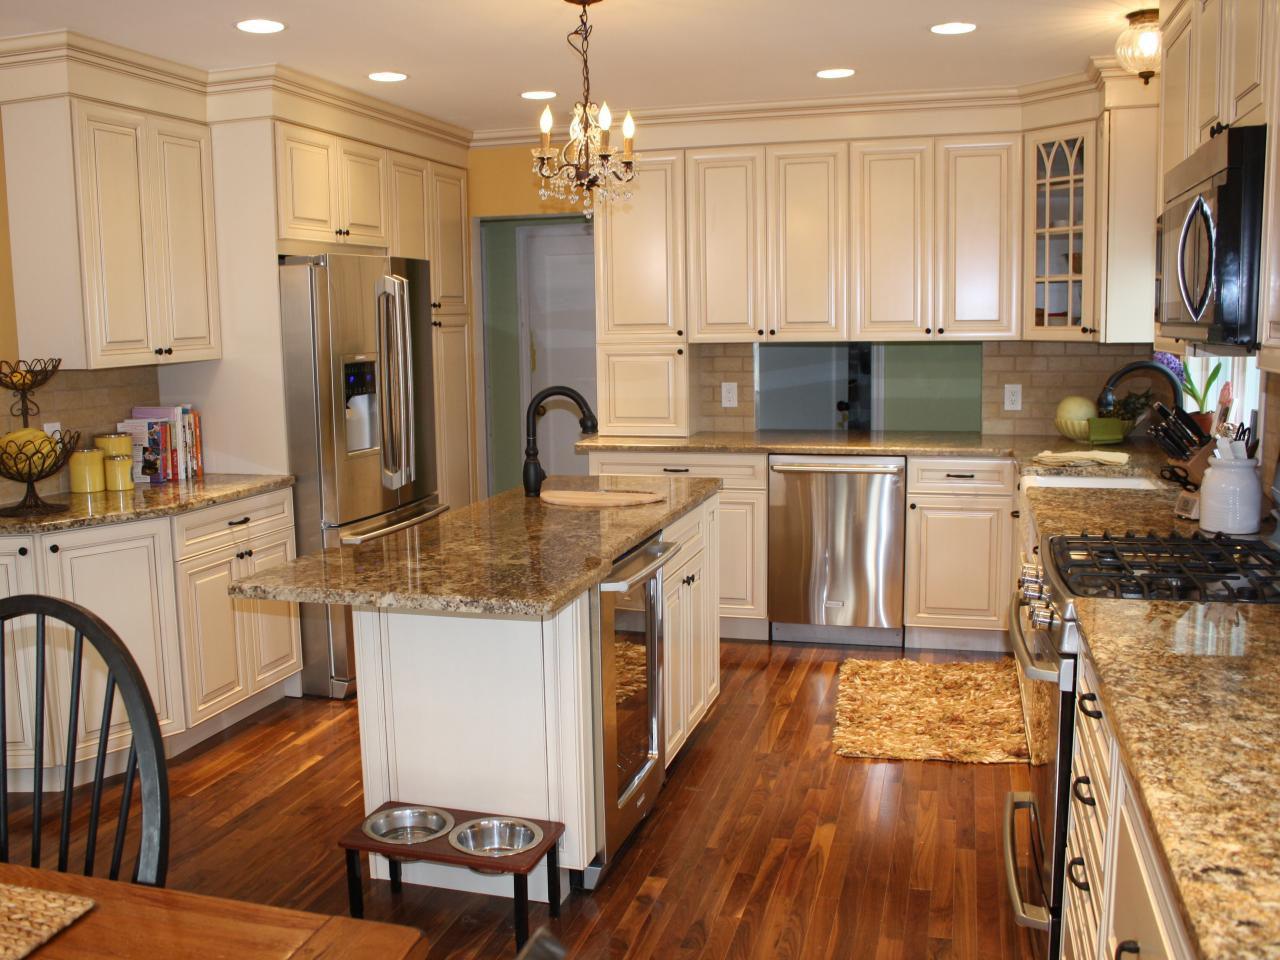 Remodeling Ideas For Kitchens Captivating Costcutting Kitchen Remodeling Ideas  Diy Review